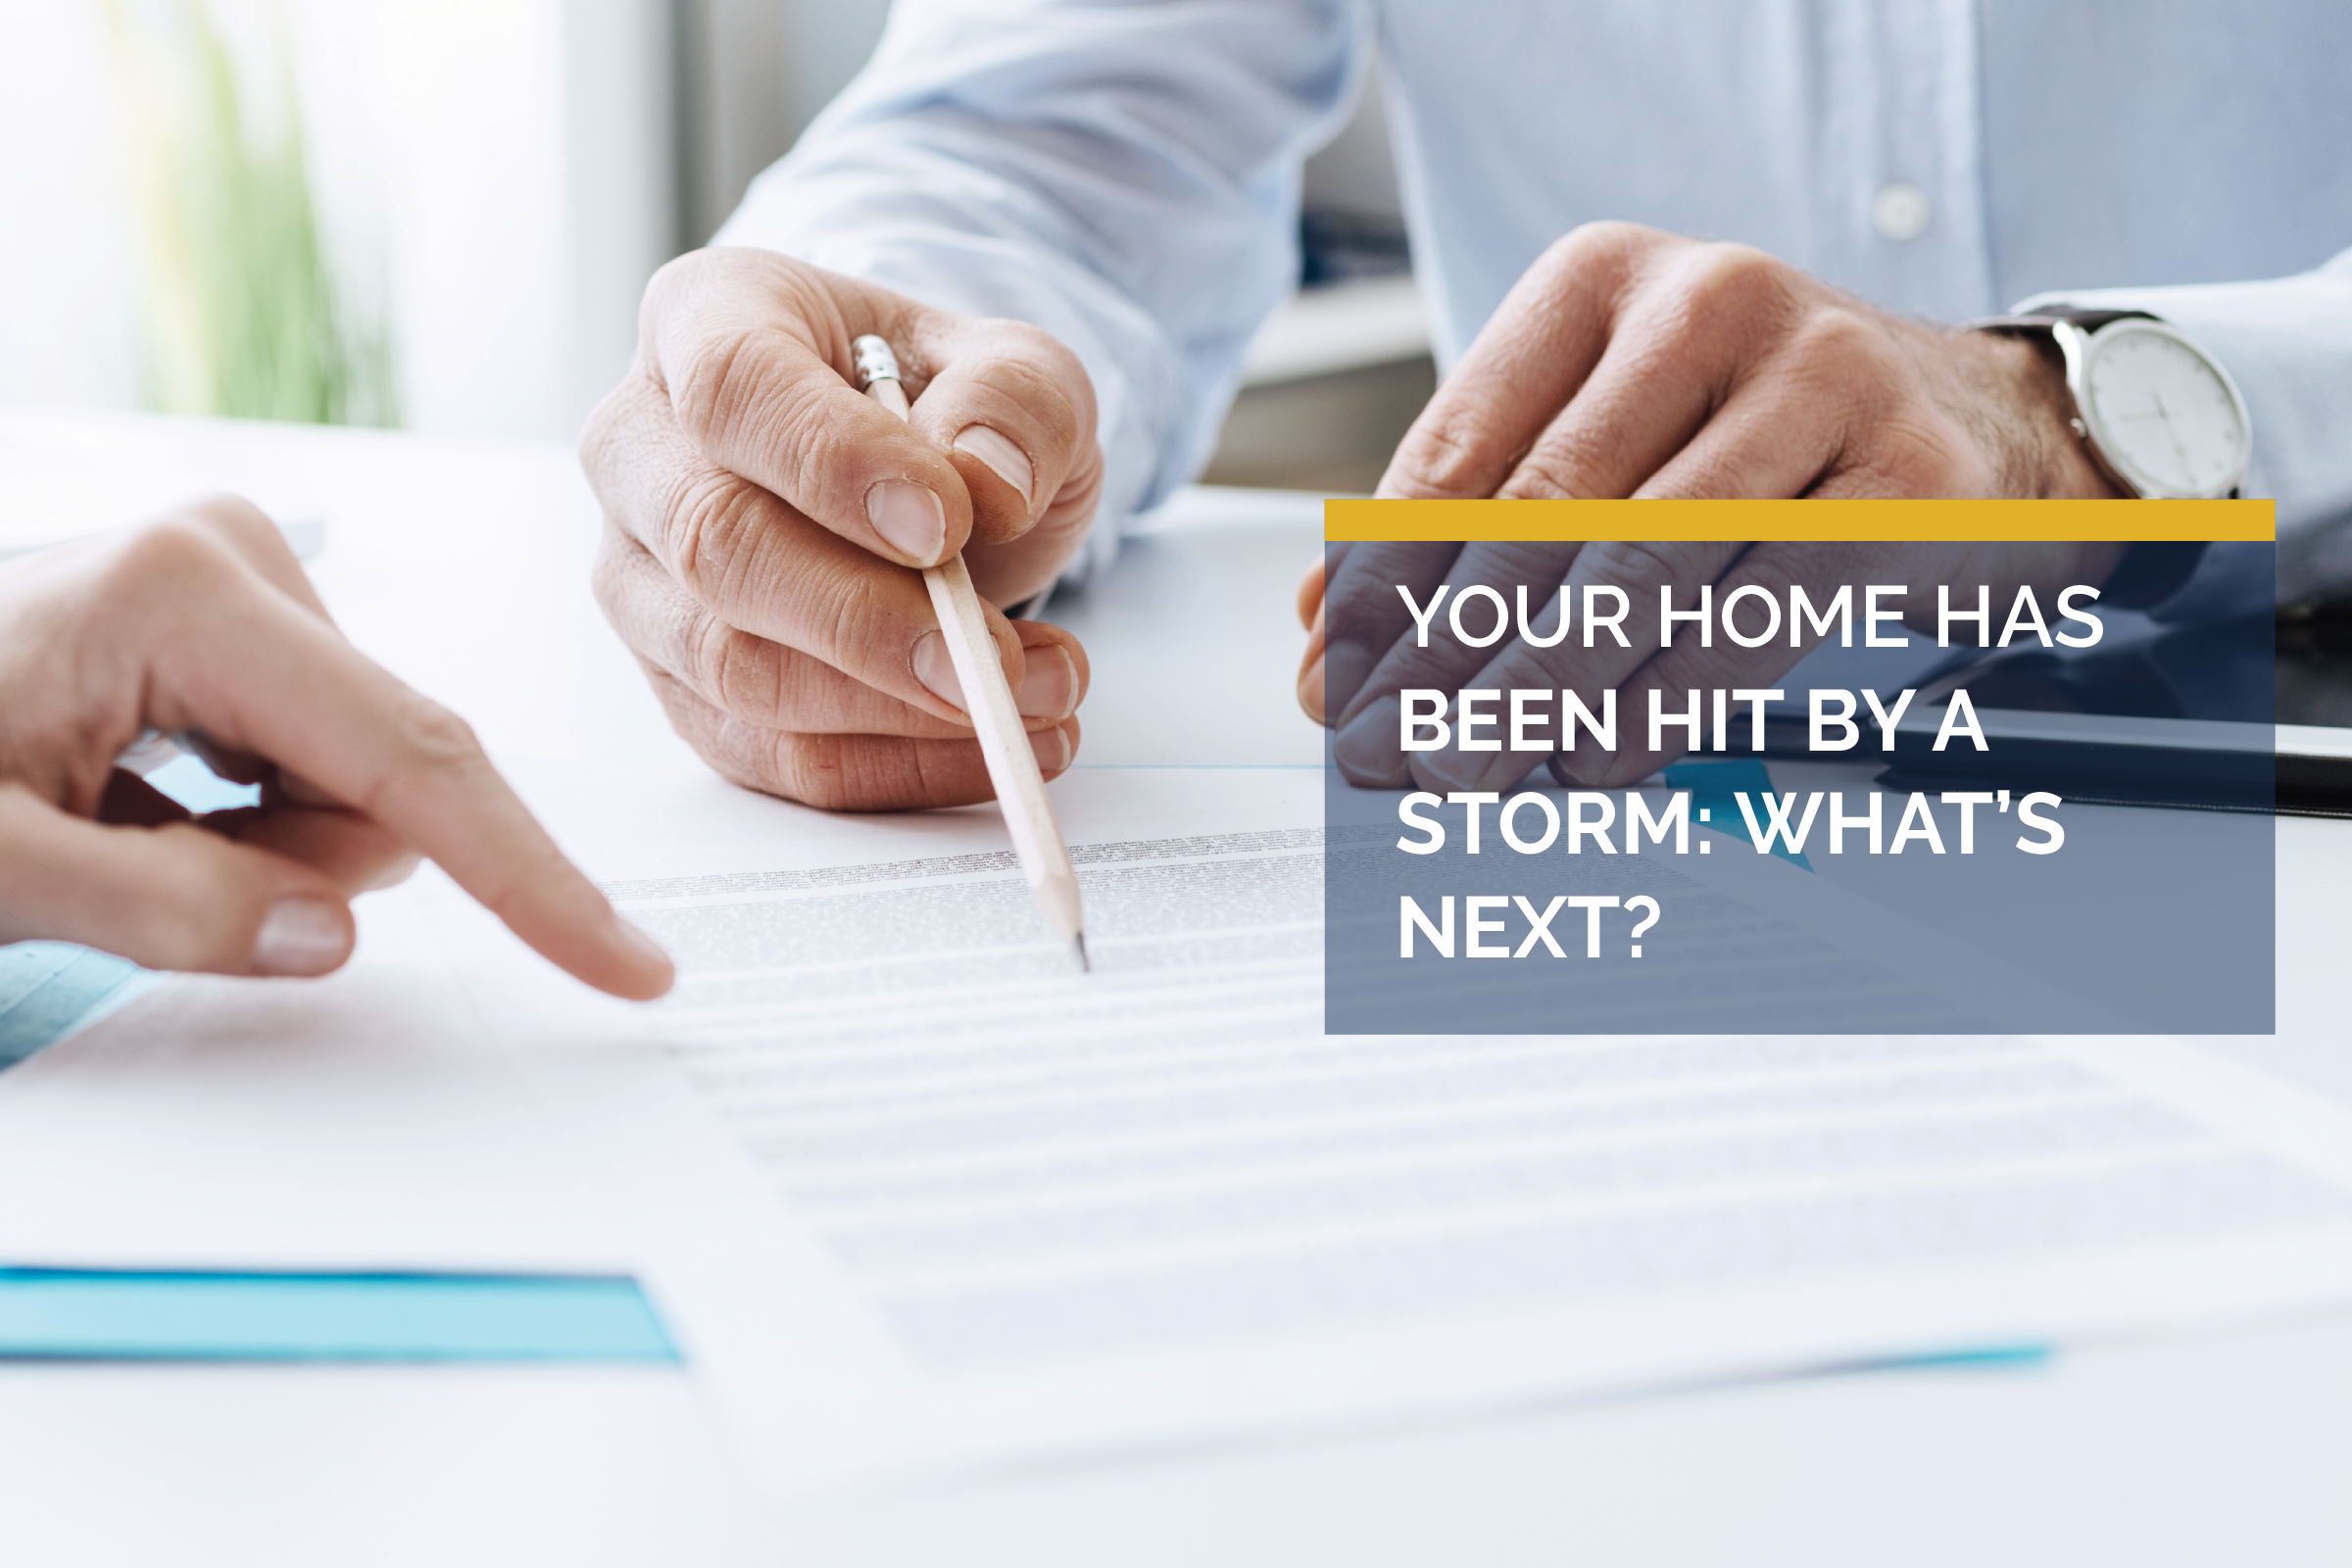 Your Home Has Been Hit by a Storm: What's Next?